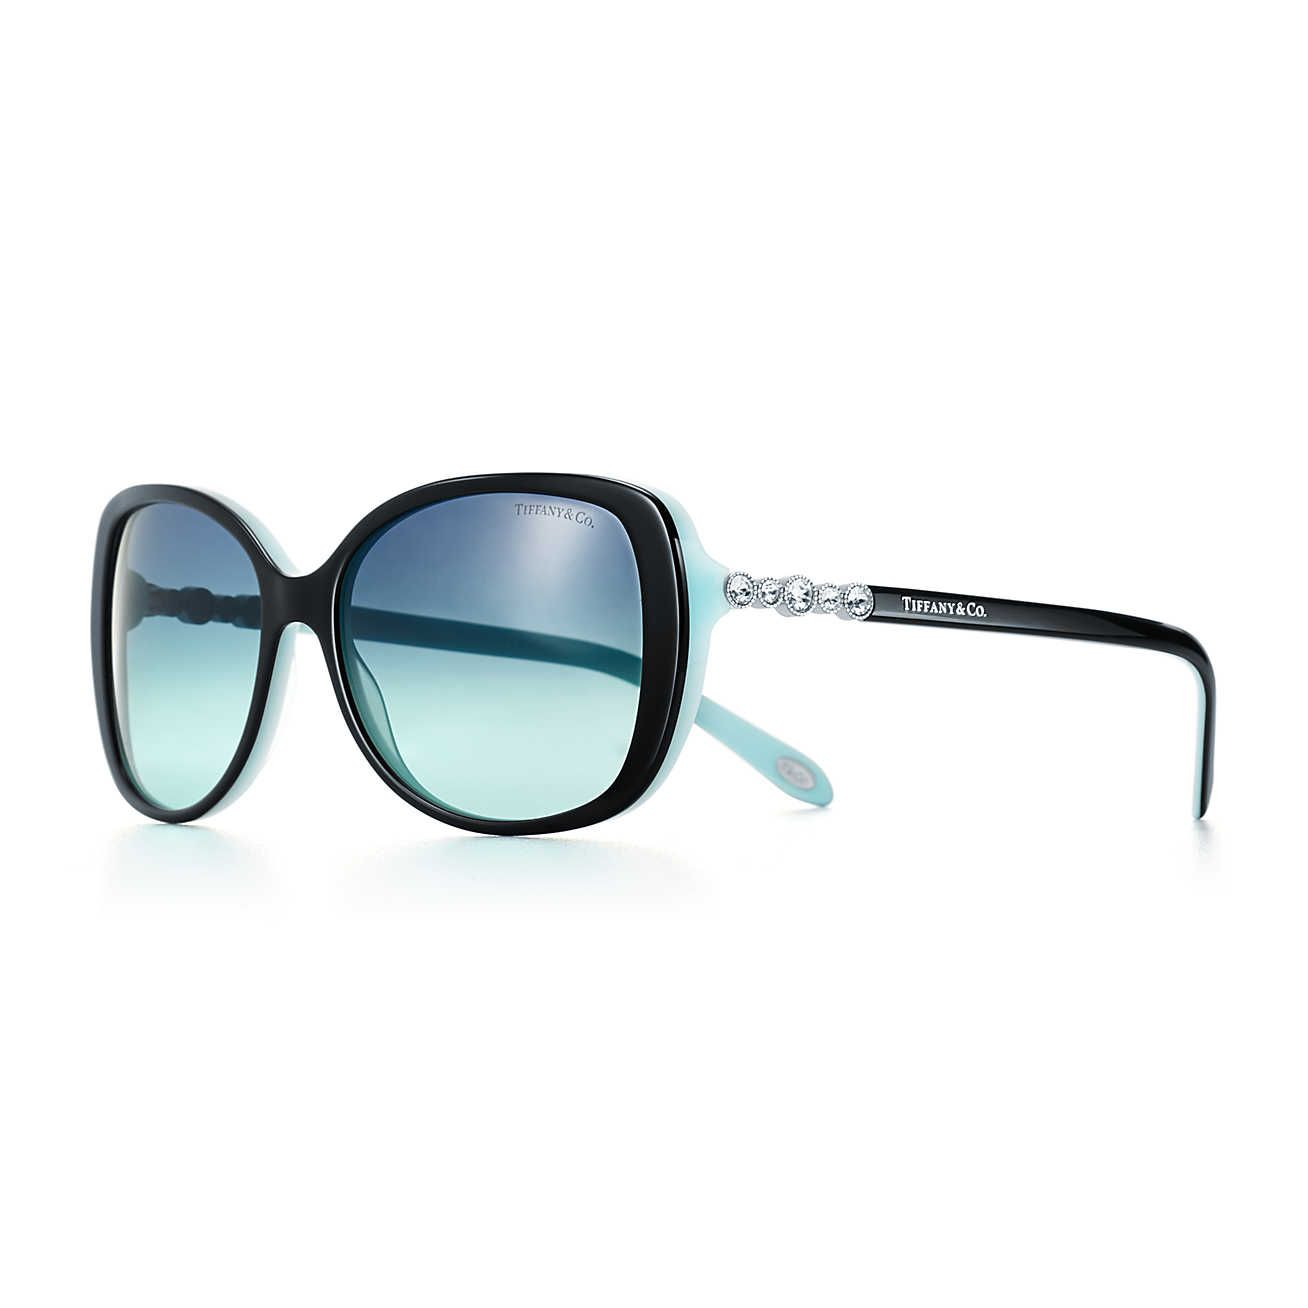 c29fd508161 Tiffany Cobblestone Rectangular Sunglasses in 2019